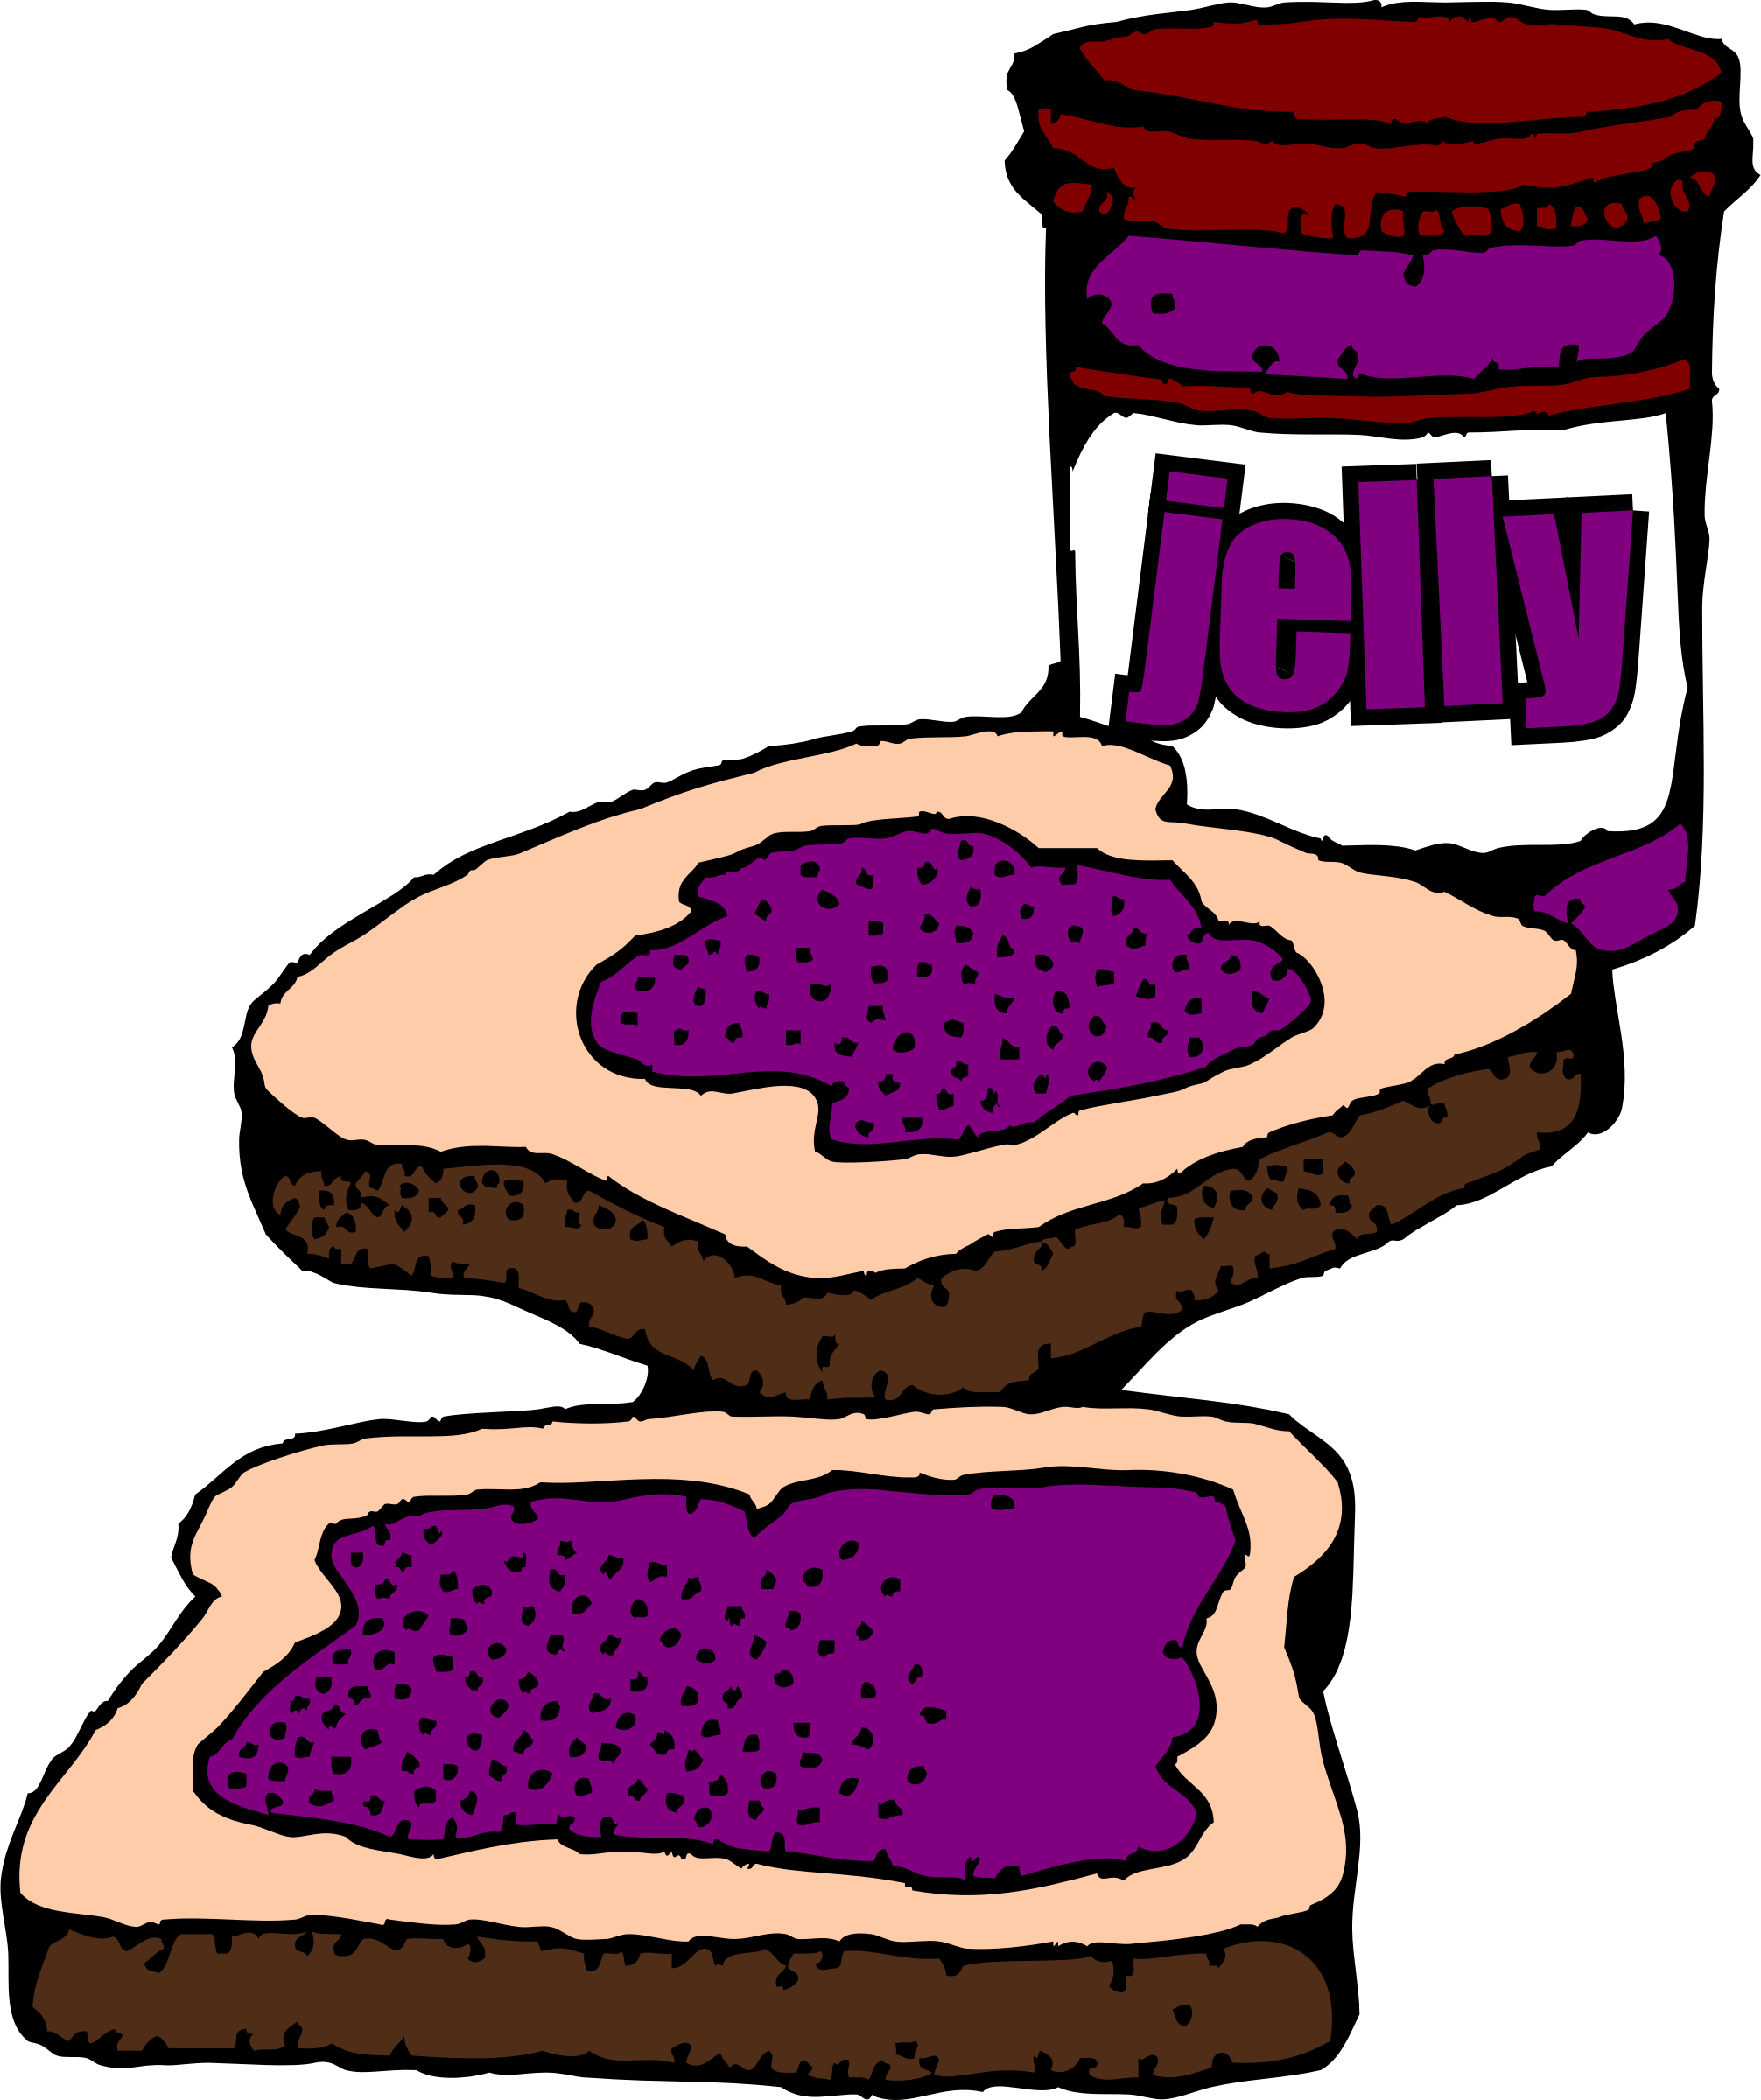 Jelly clipart jelly cake. Free peanut butter and